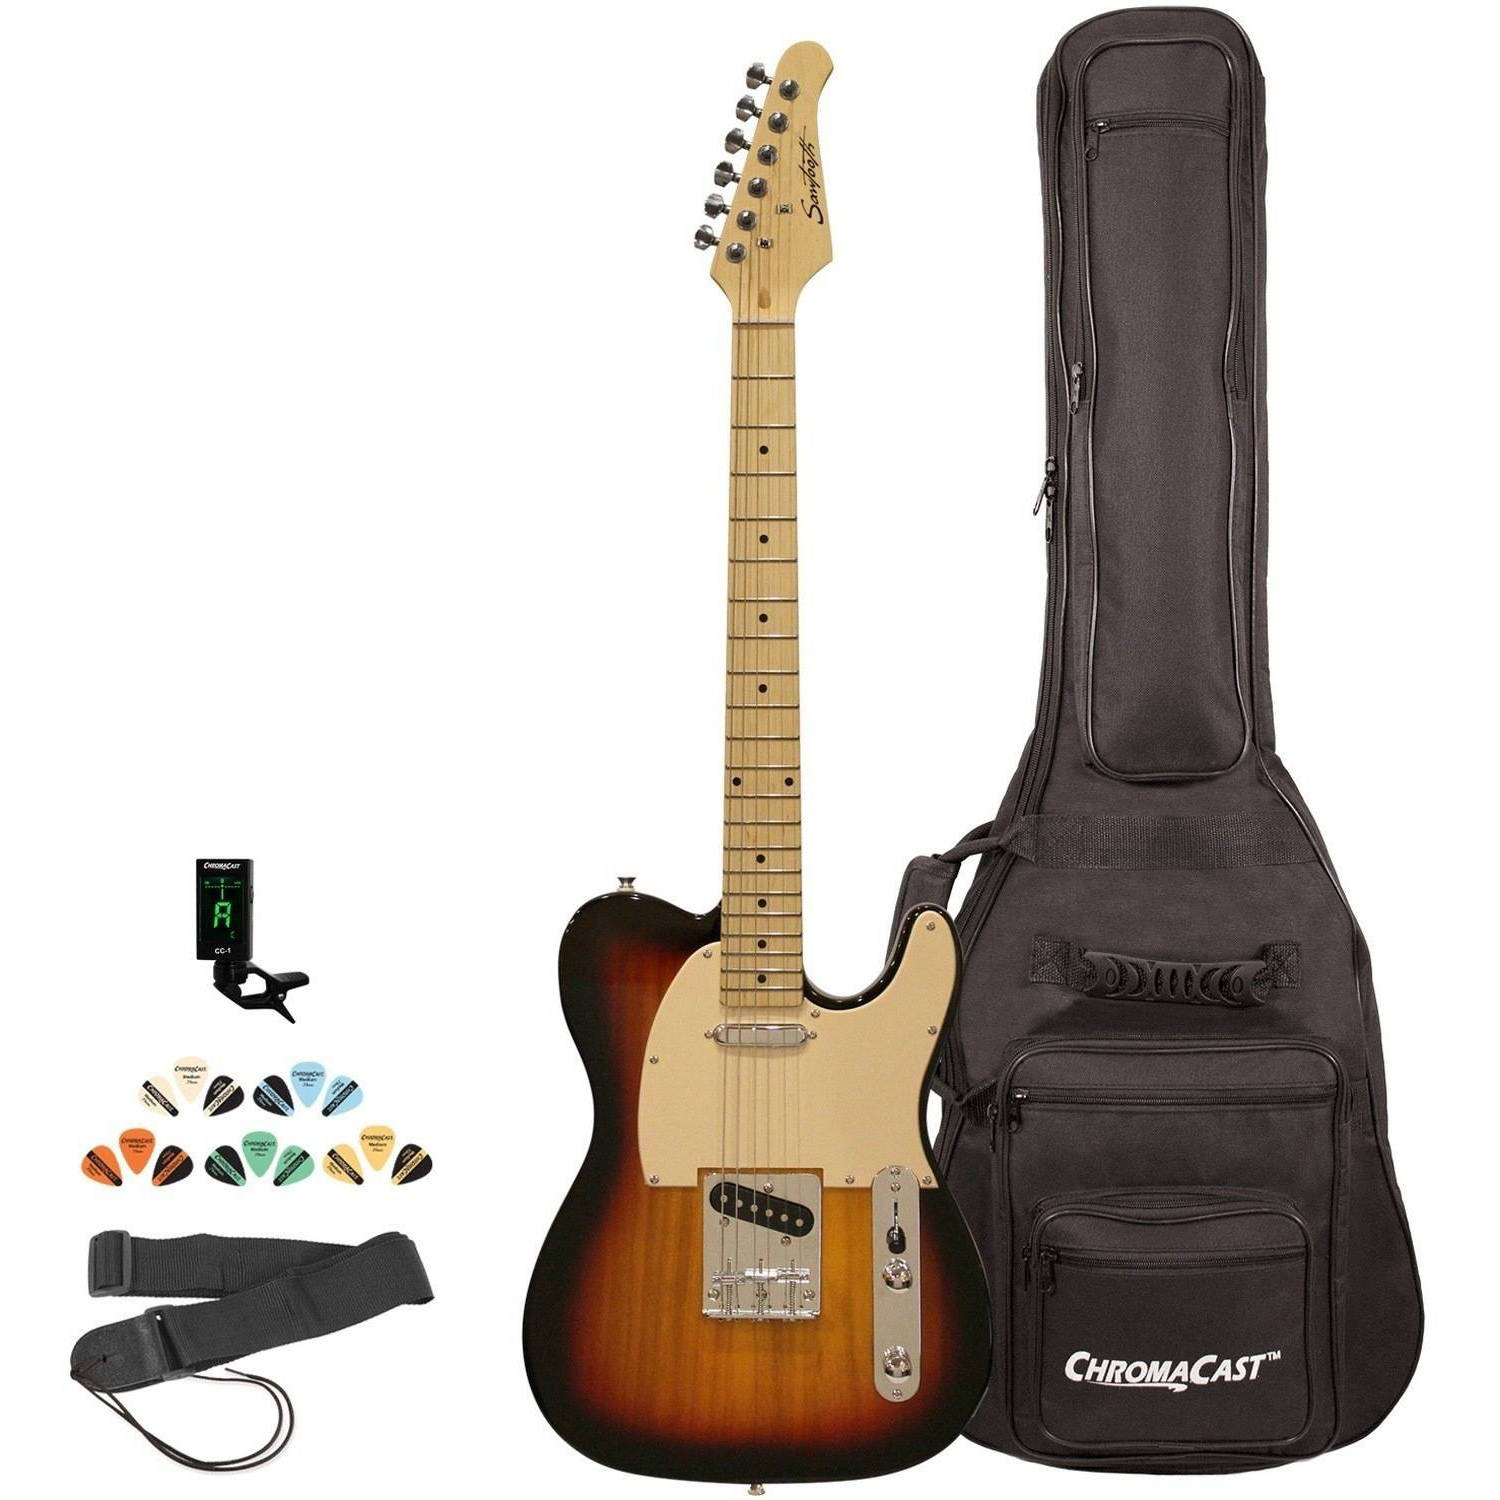 Sawtooth ET Series Electric Guitar Kit with ChromaCast Gig Bag & Accessories